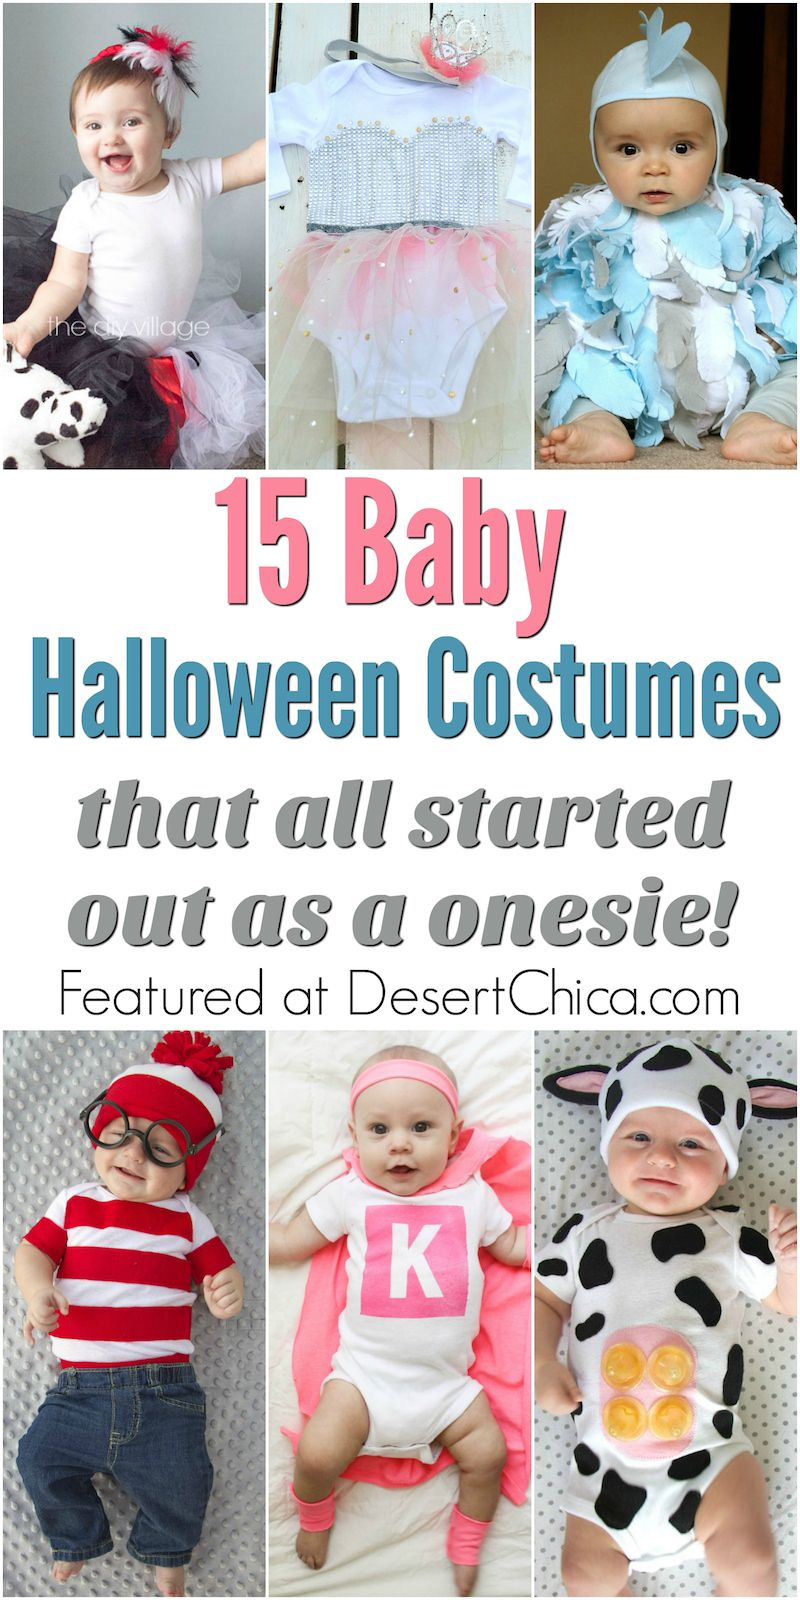 6d96ae816 Adorable Baby Costumes from a Onesie